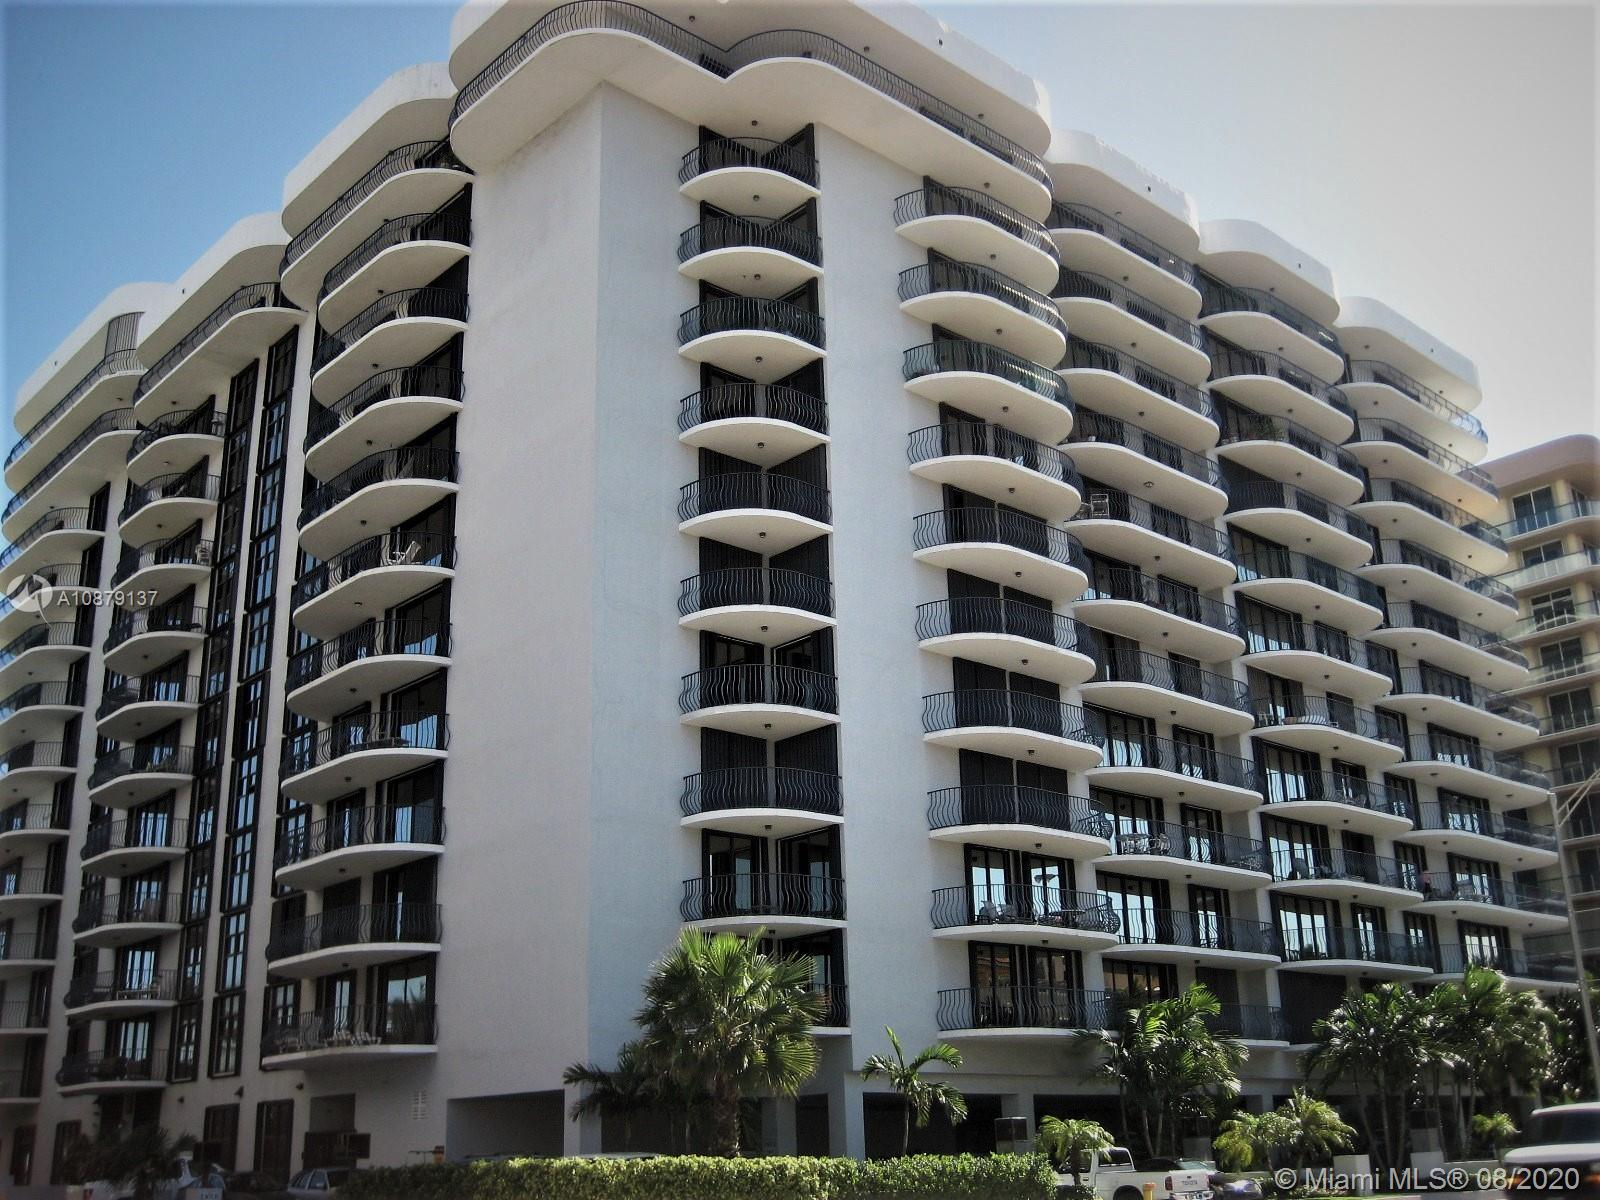 Champlain Towers North #705 - 8877 Collins Avenue #705, Surfside, FL 33154